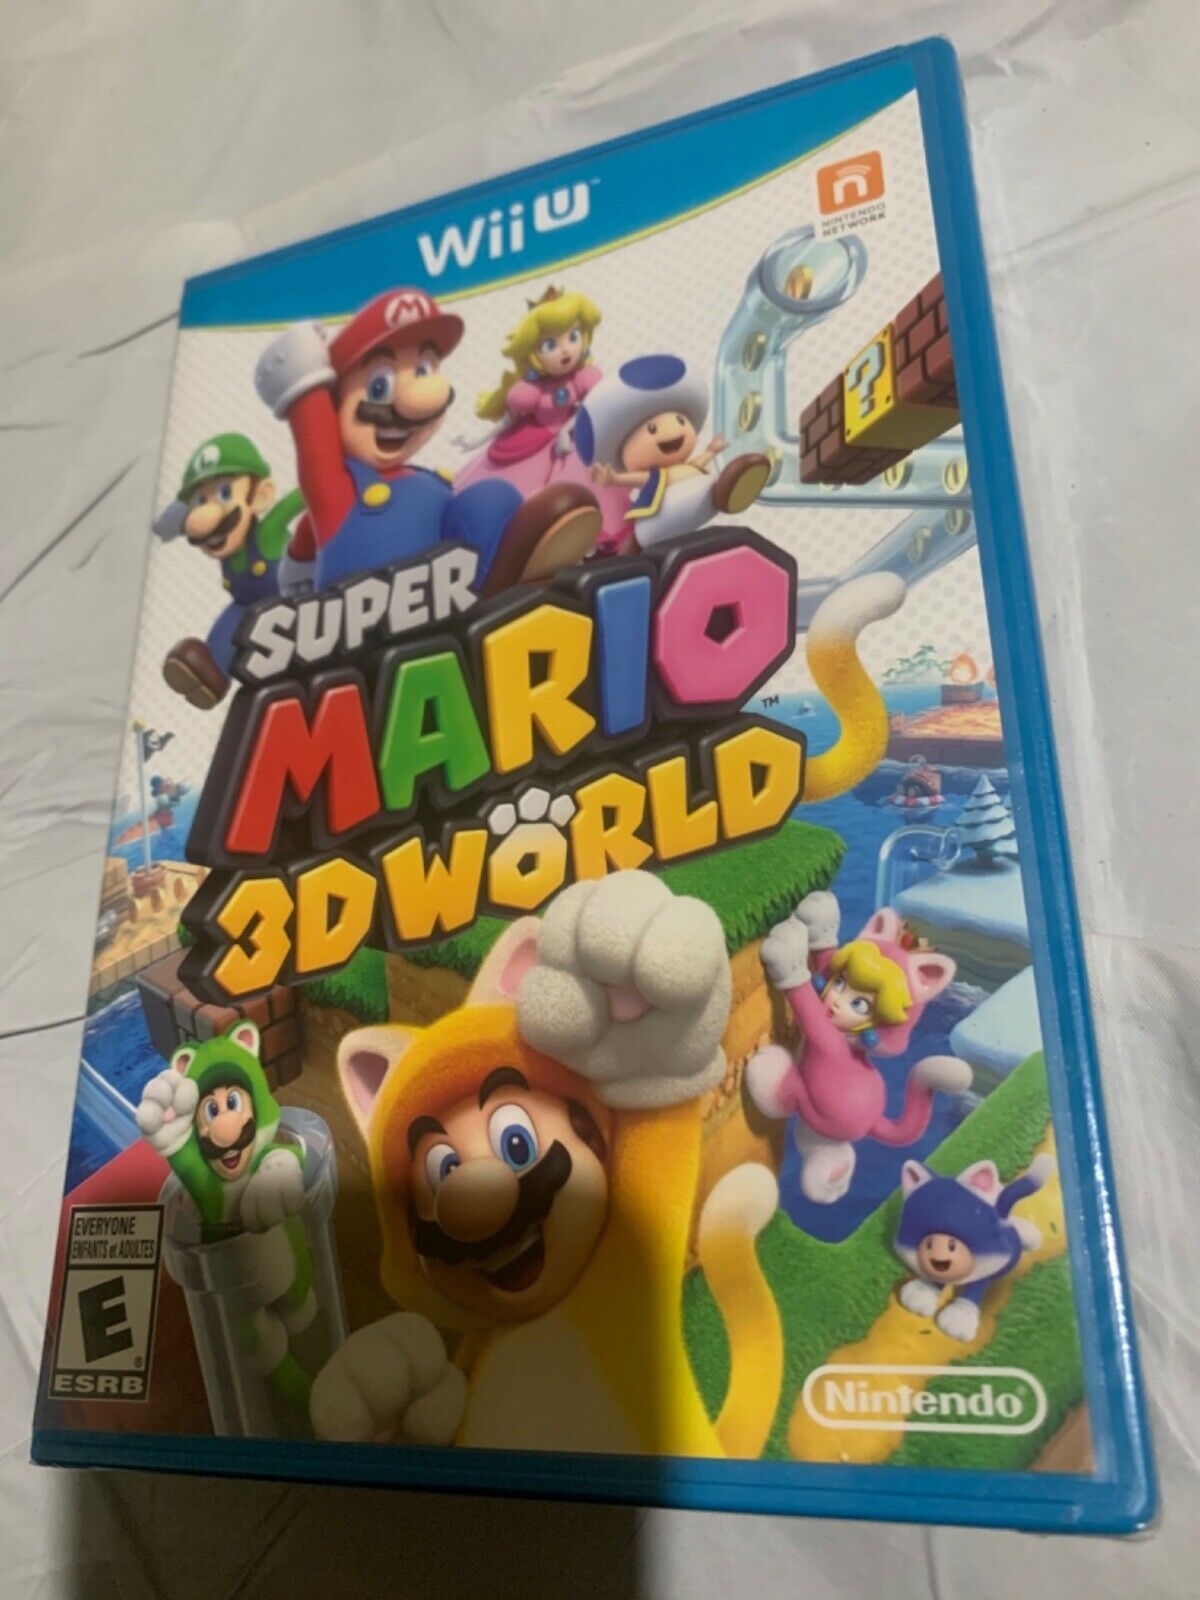 Super Mario 3D World Wii U, 2013 BRAND NEW FACTORY SEALED - $42.99